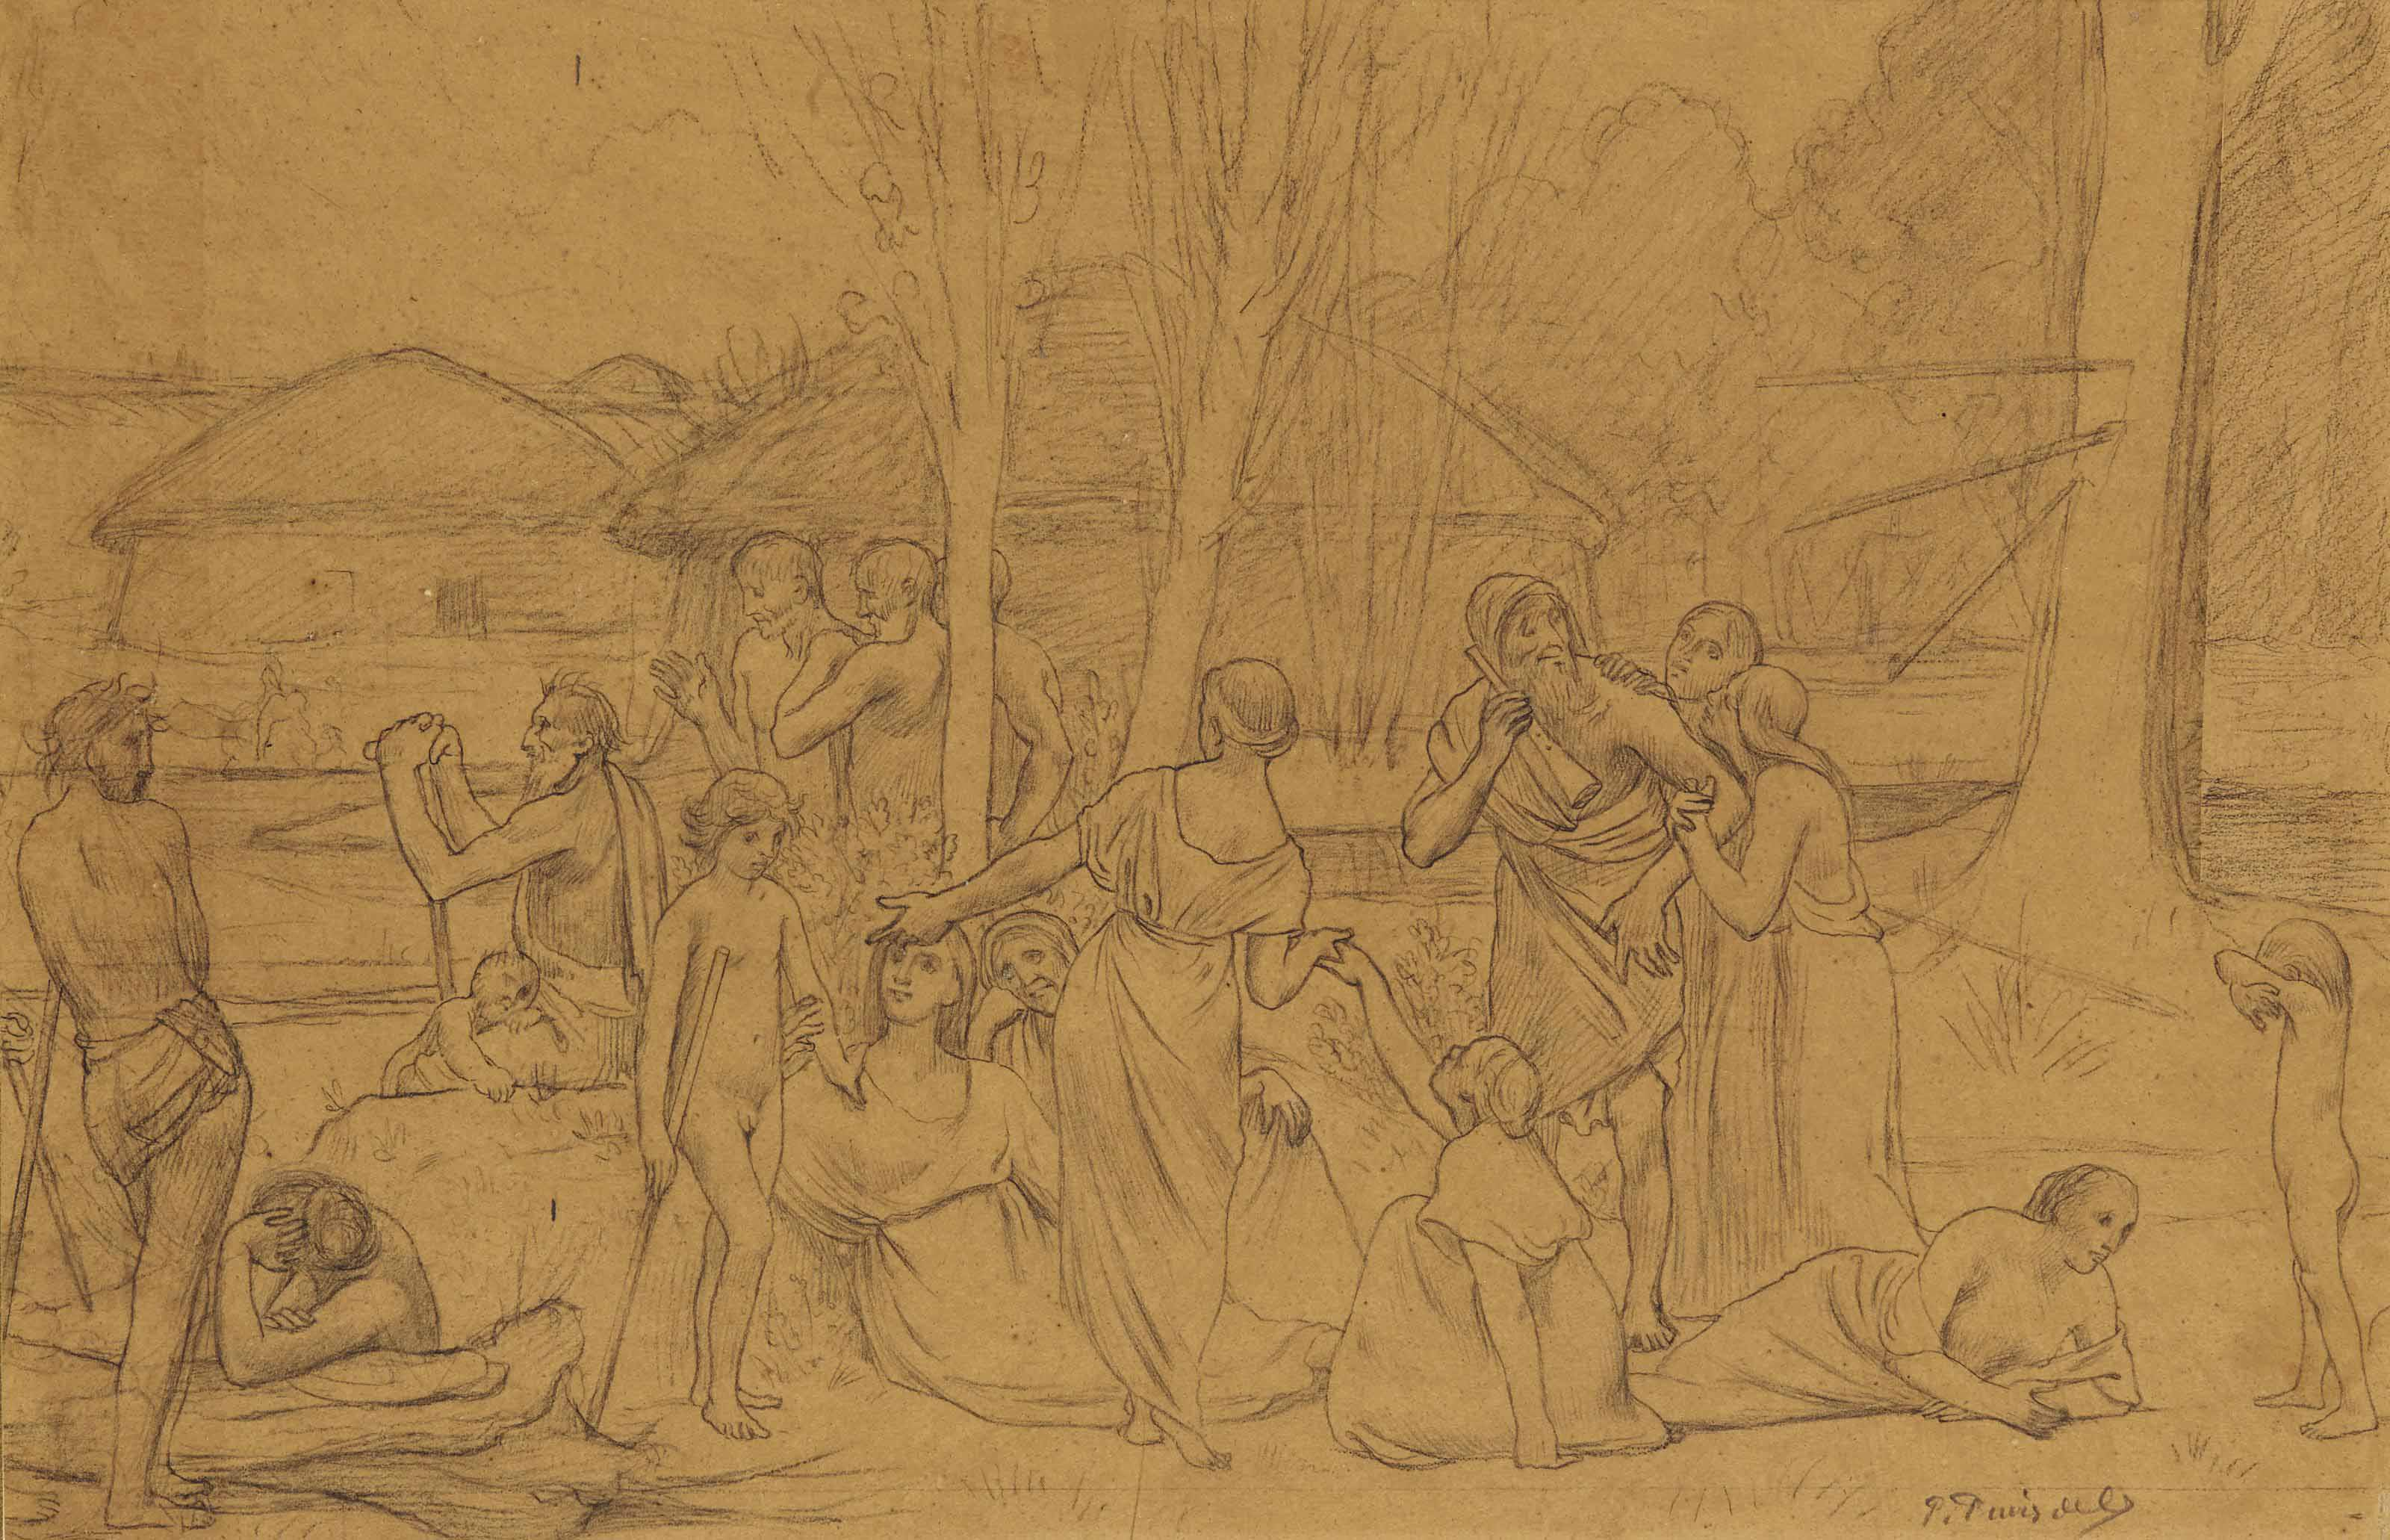 Study for Ludus pro patria: A group of figures in classical costume gathered beside a river